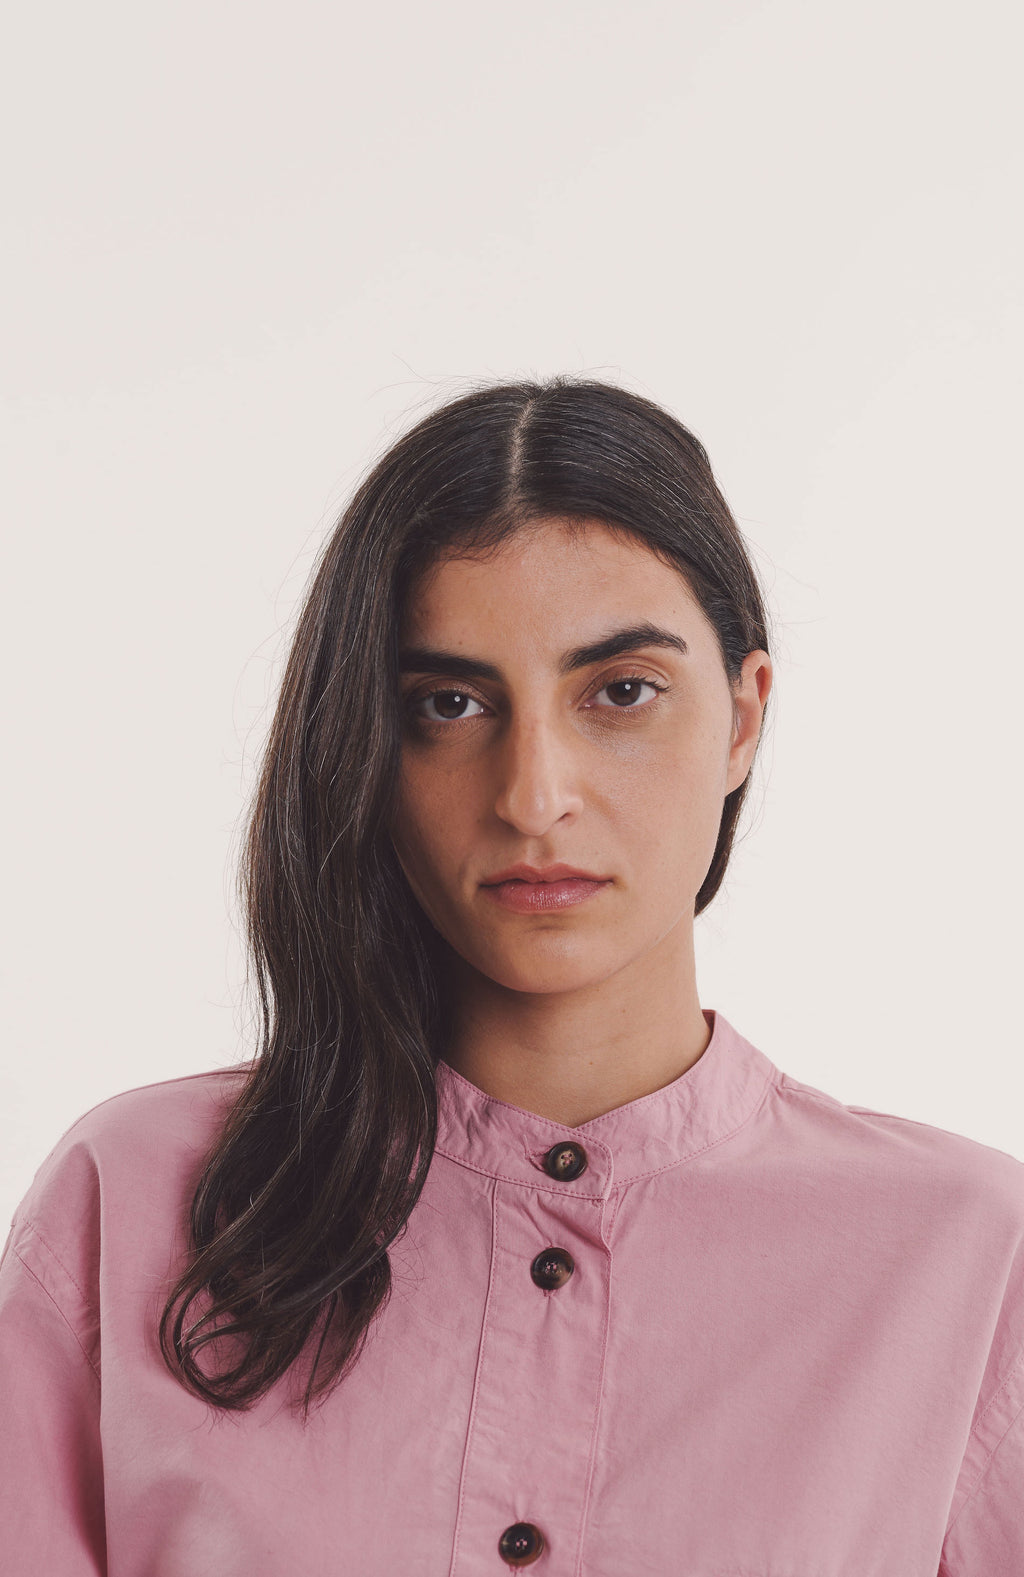 YMC Sonora Top - PINK